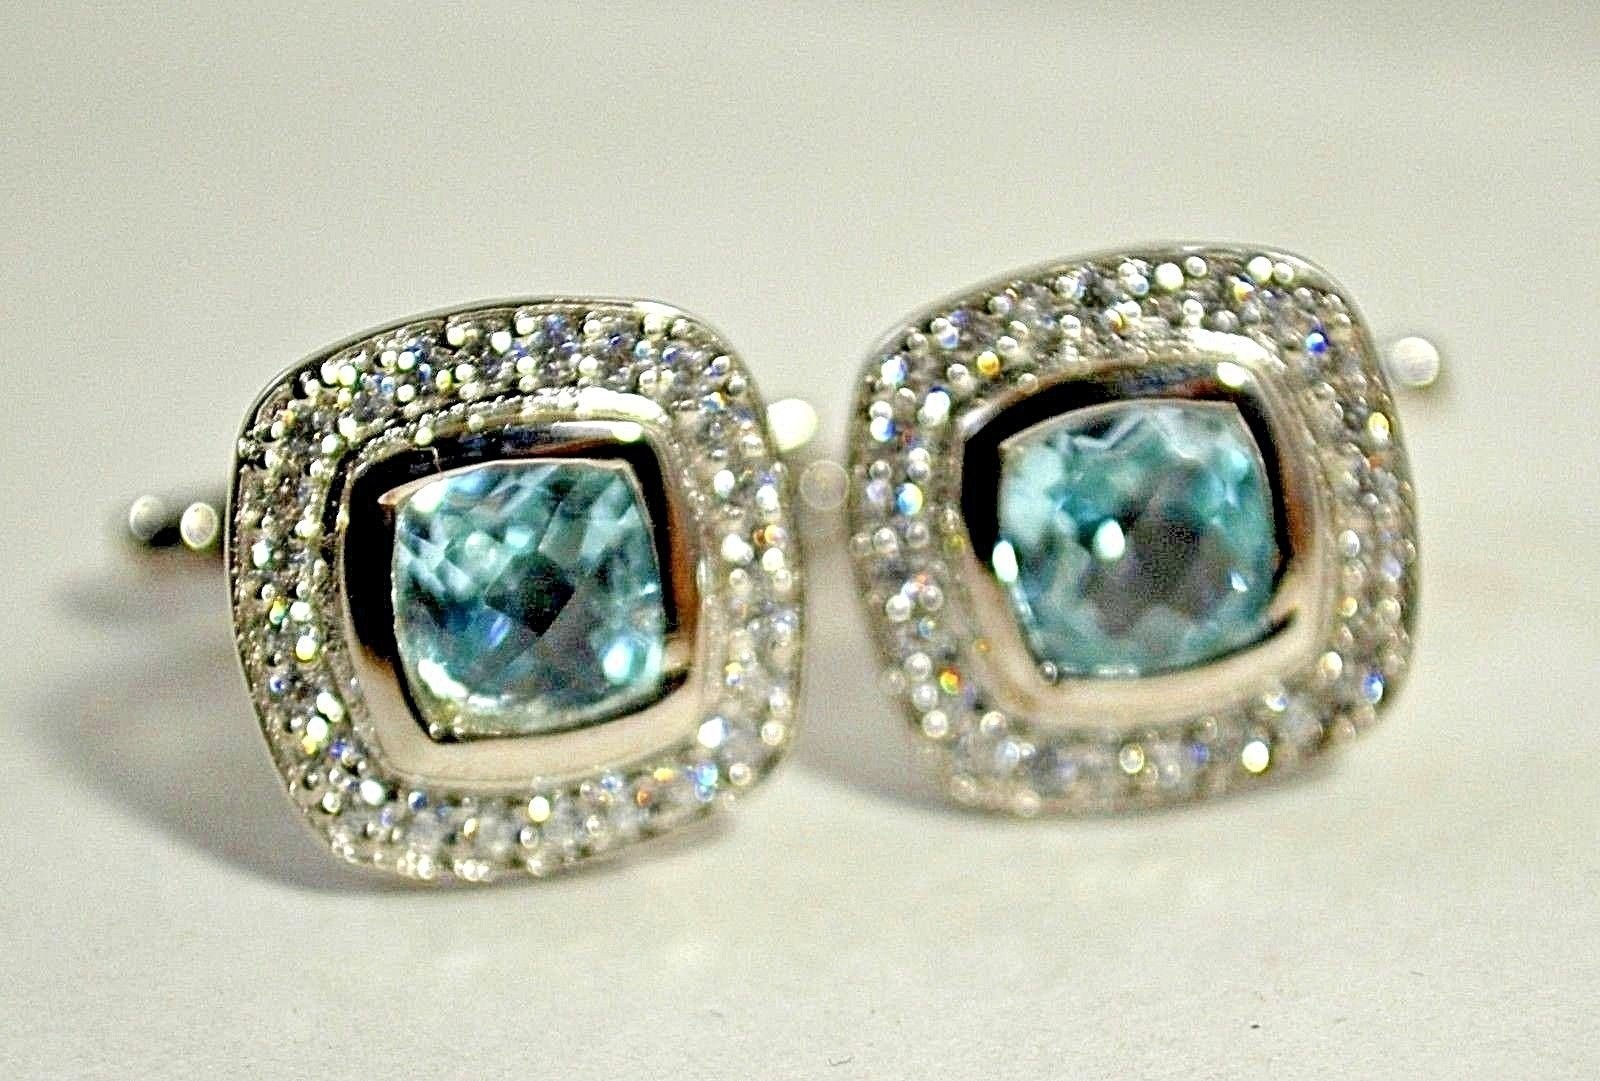 925 Sterling Silver Natural A+ Quality Blue Topaz And Cz Gemstone Artistic Handm image 2